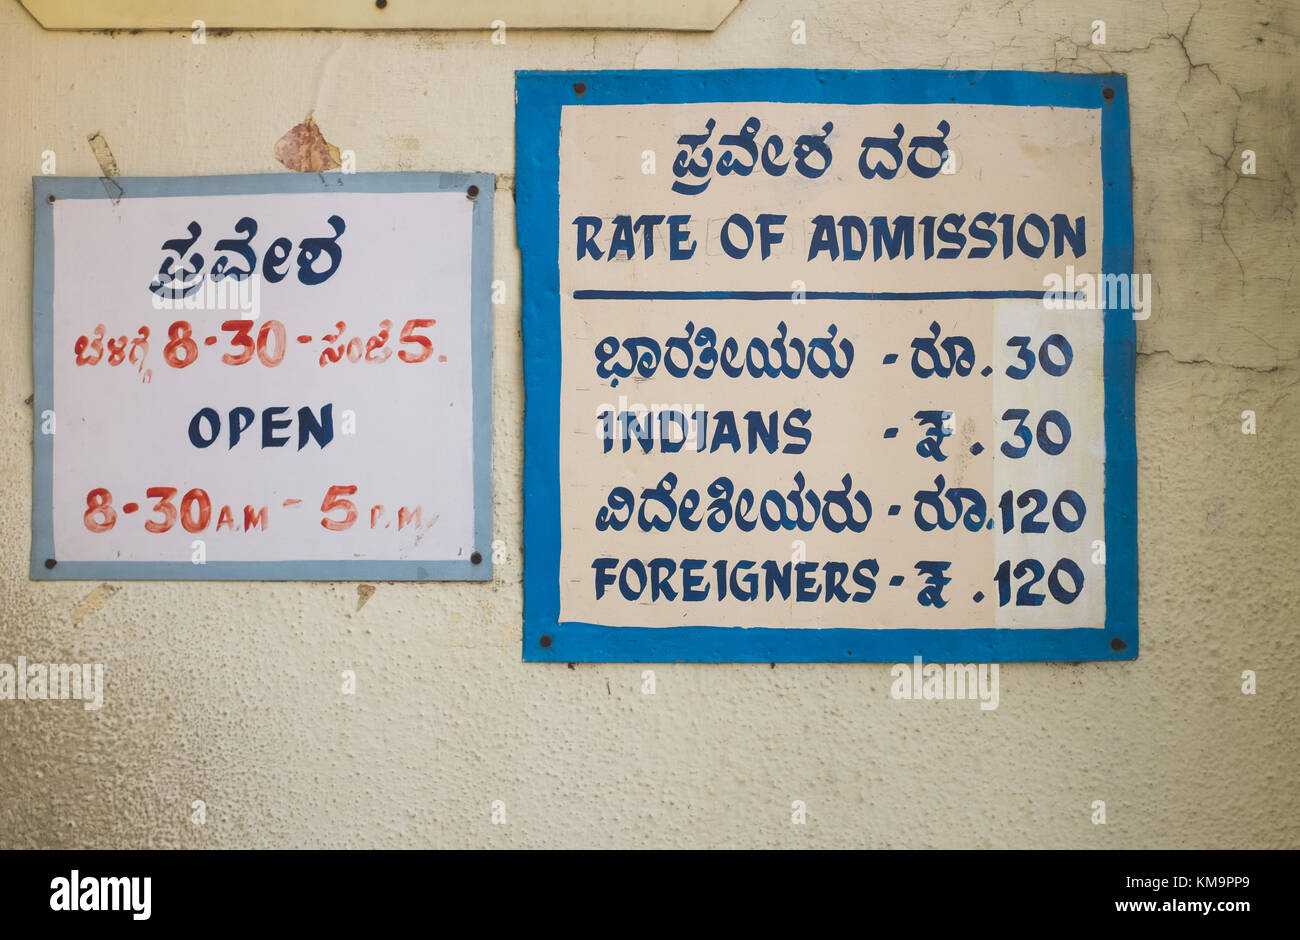 Entry sign for Indian and foreign visitors, Mysore, Karnataka, India. - Stock Image